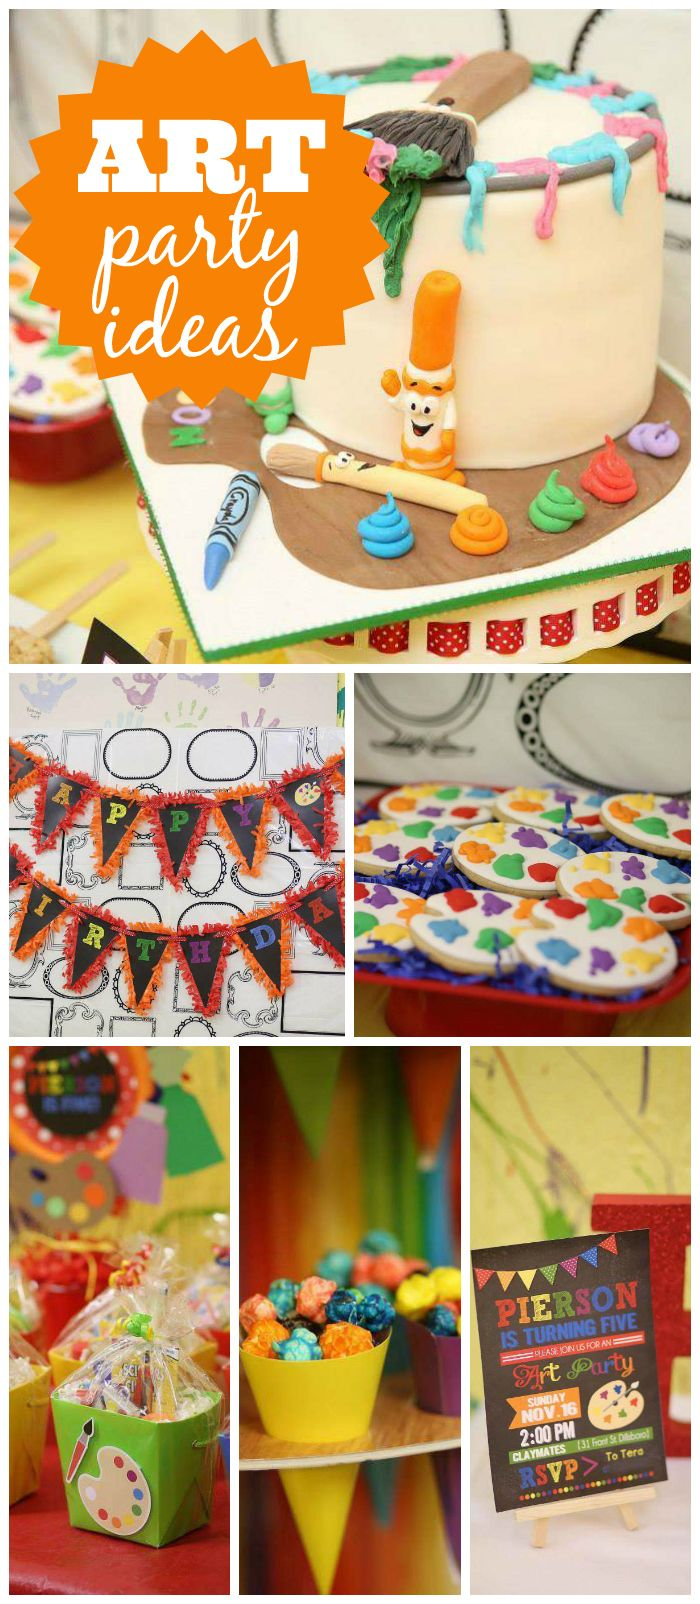 Arts and crafts party ideas - Arts Crafts Birthday Pierson S 5th Birthday Art Party